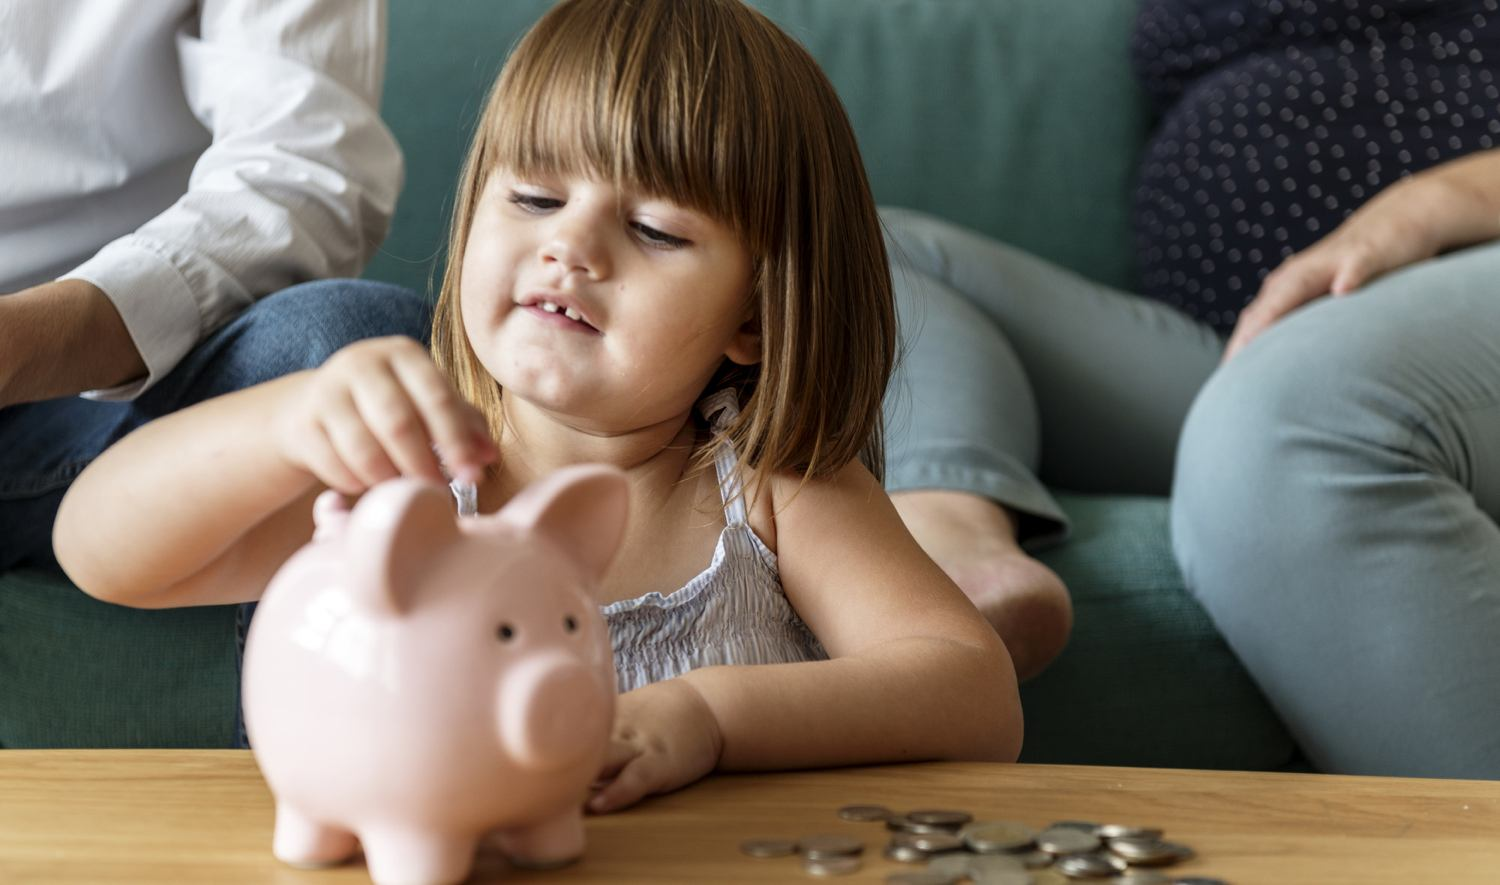 Child putting change in piggy back after downsizing home with family